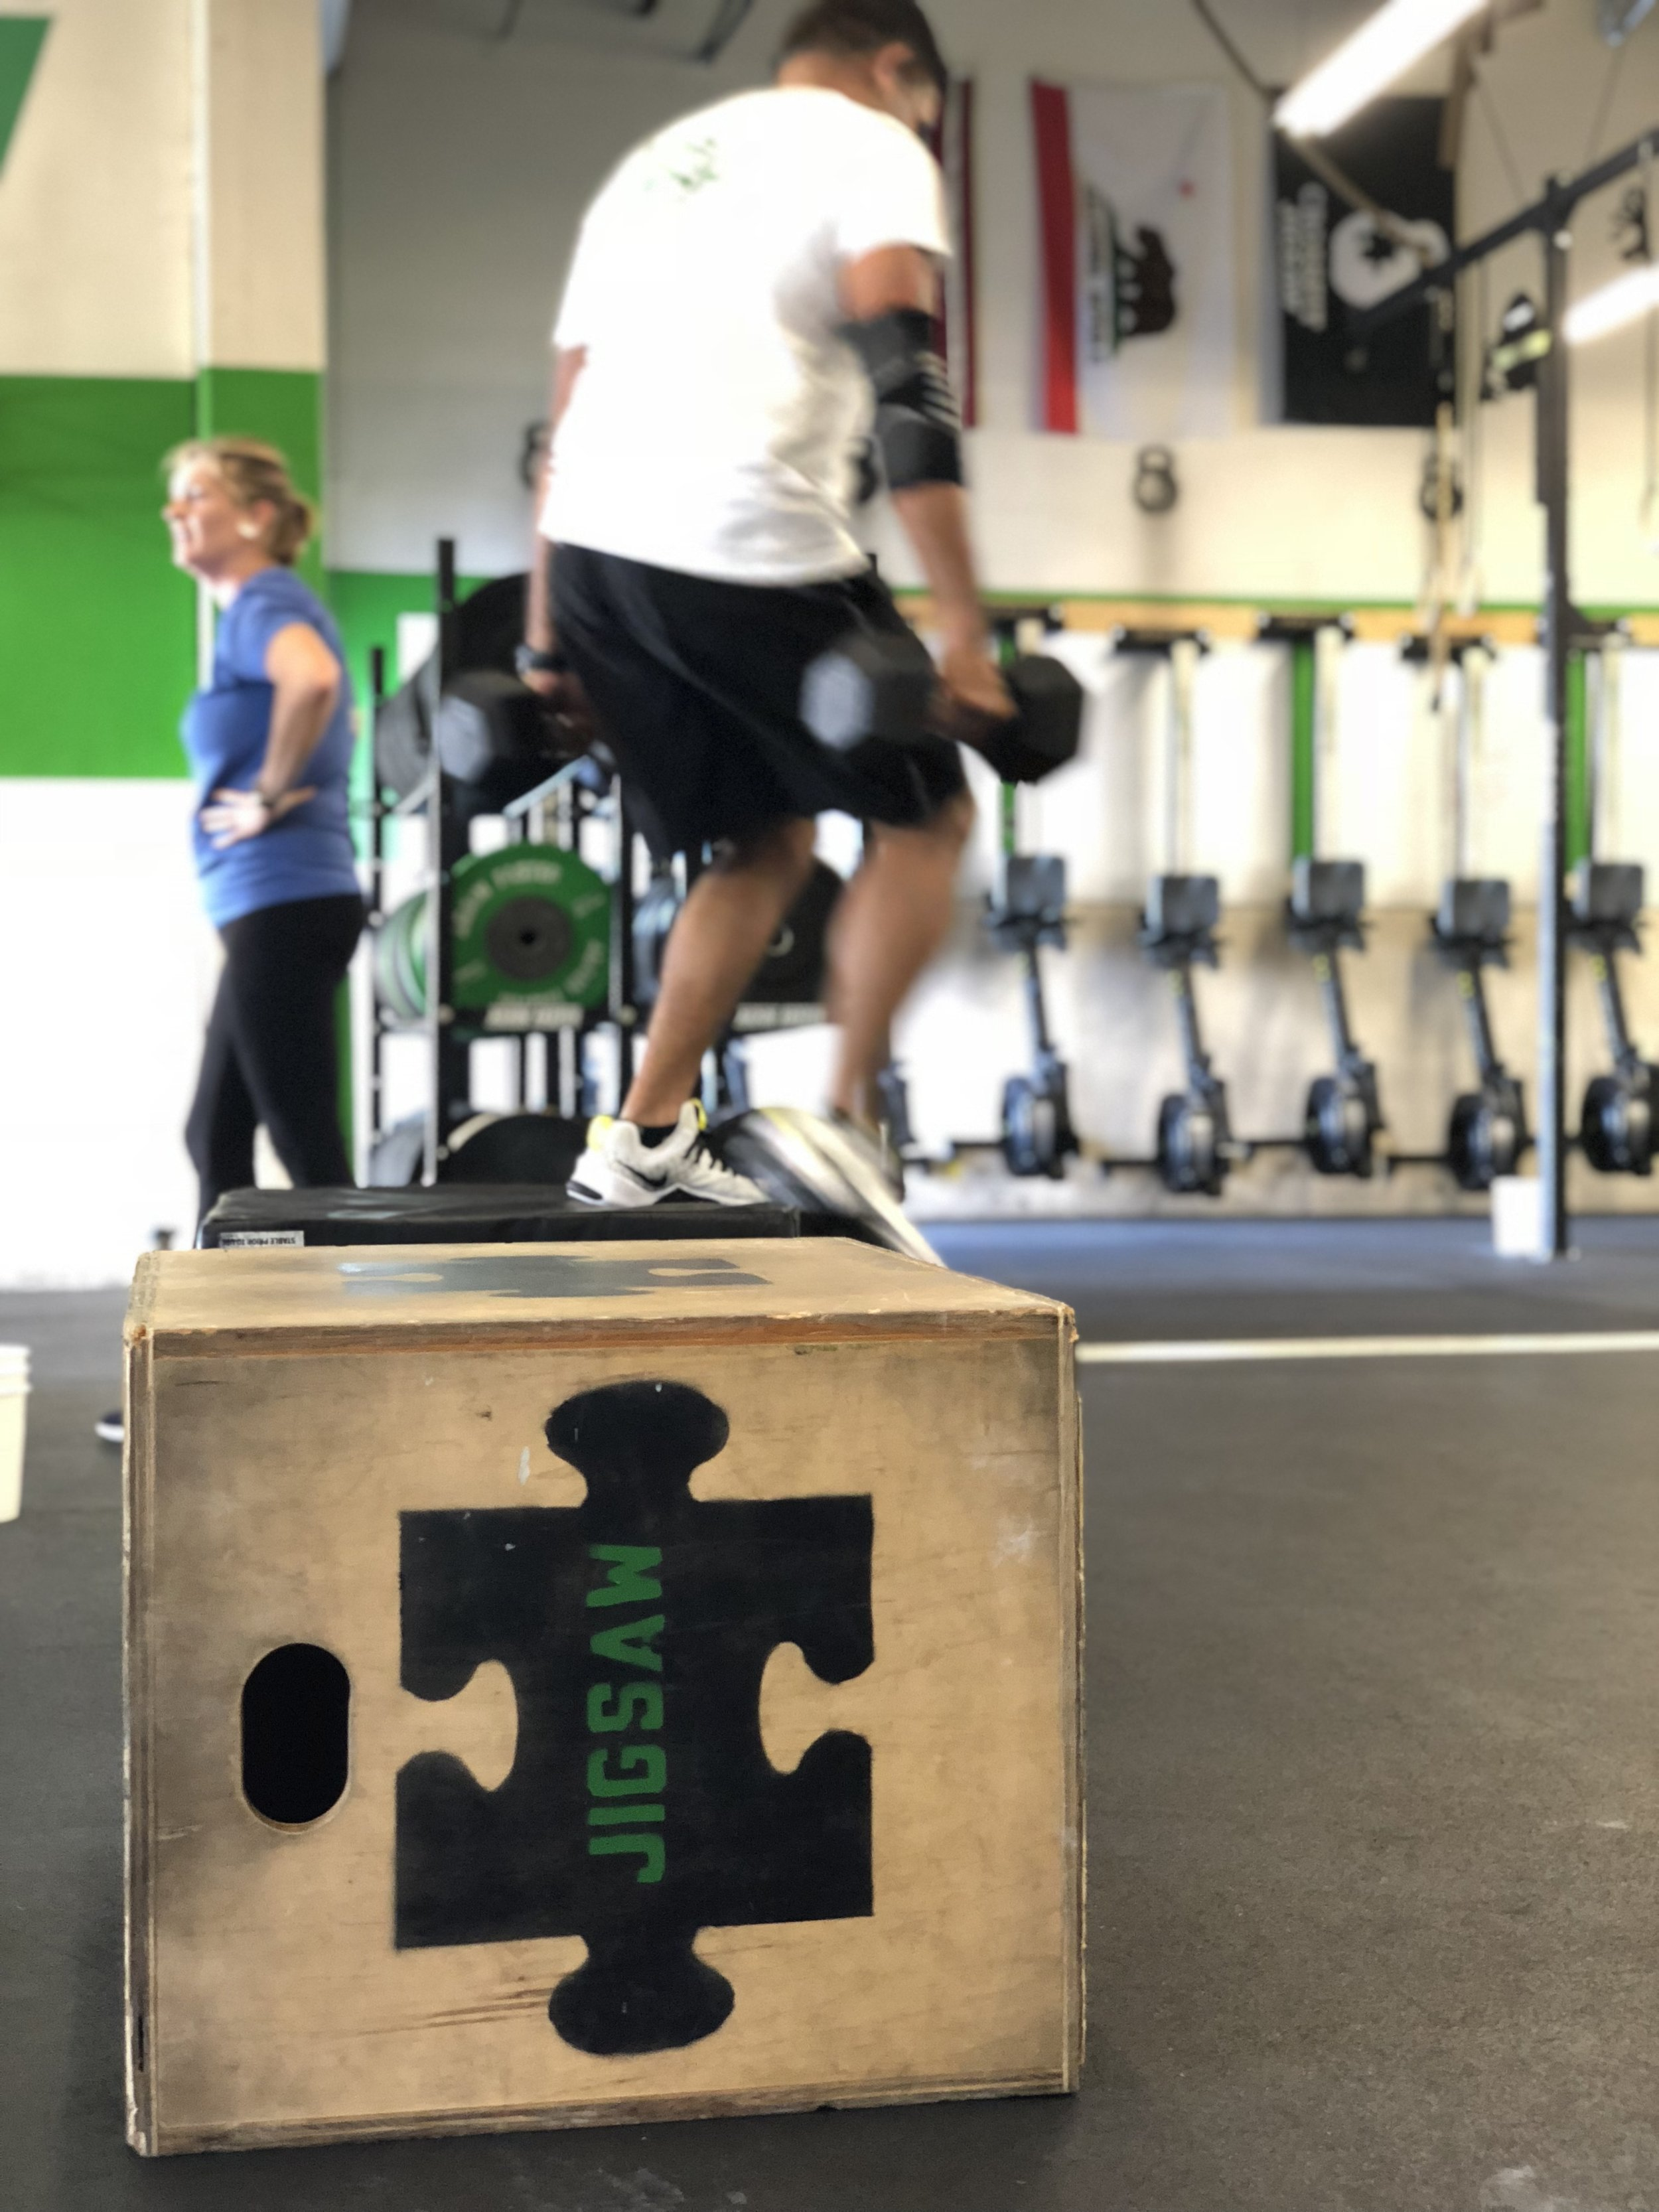 Box jumps and power cleans today…